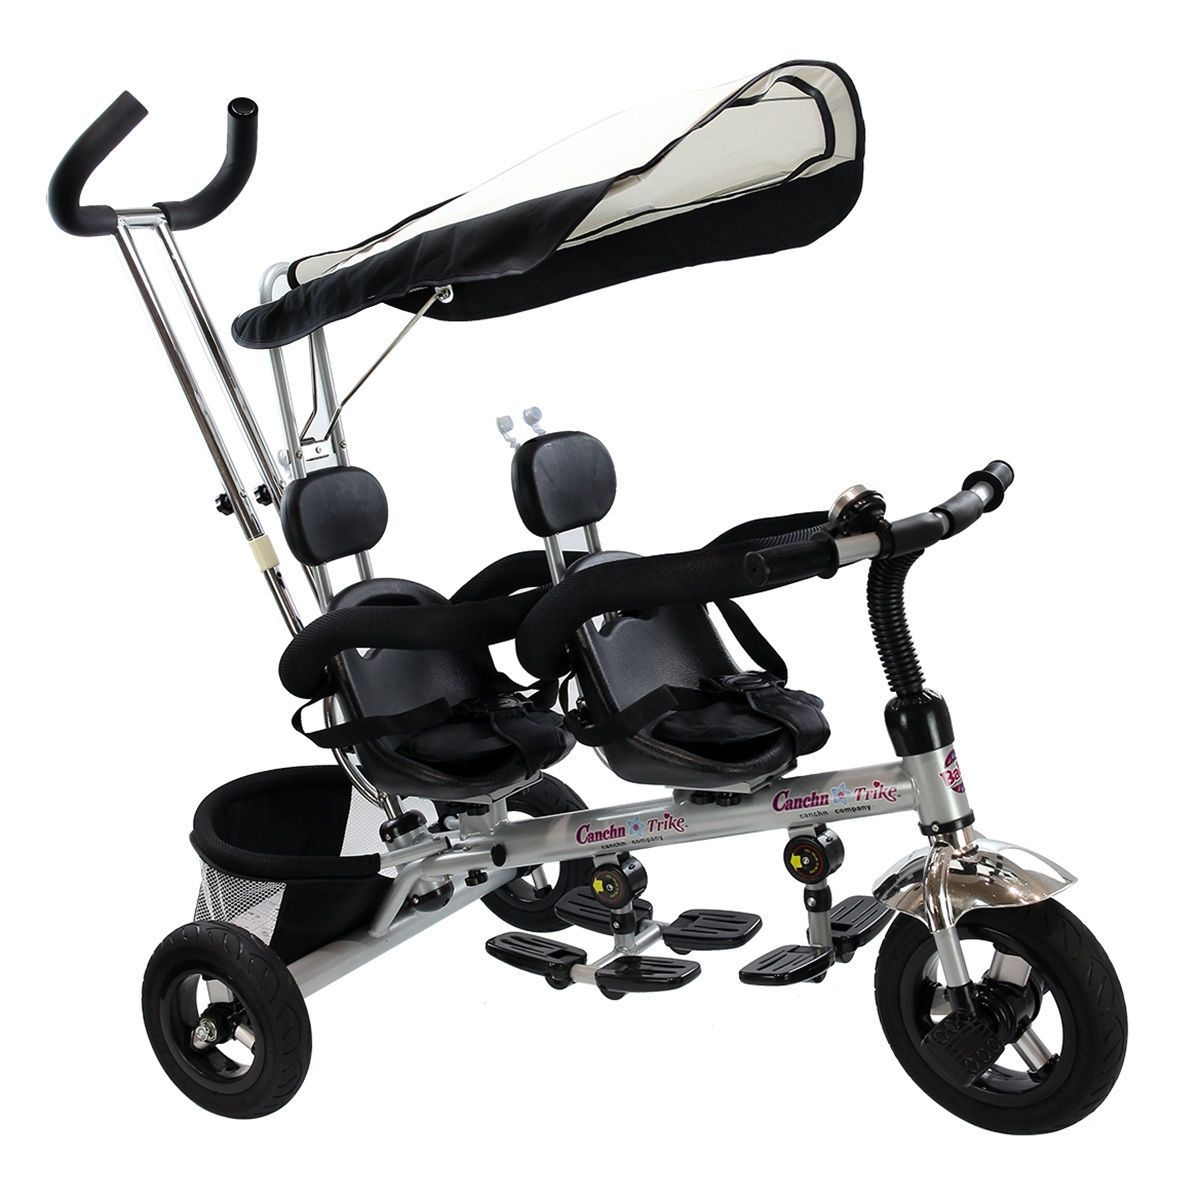 4 In 1 Twins Baby Tricycle with Safety Double Rotatable